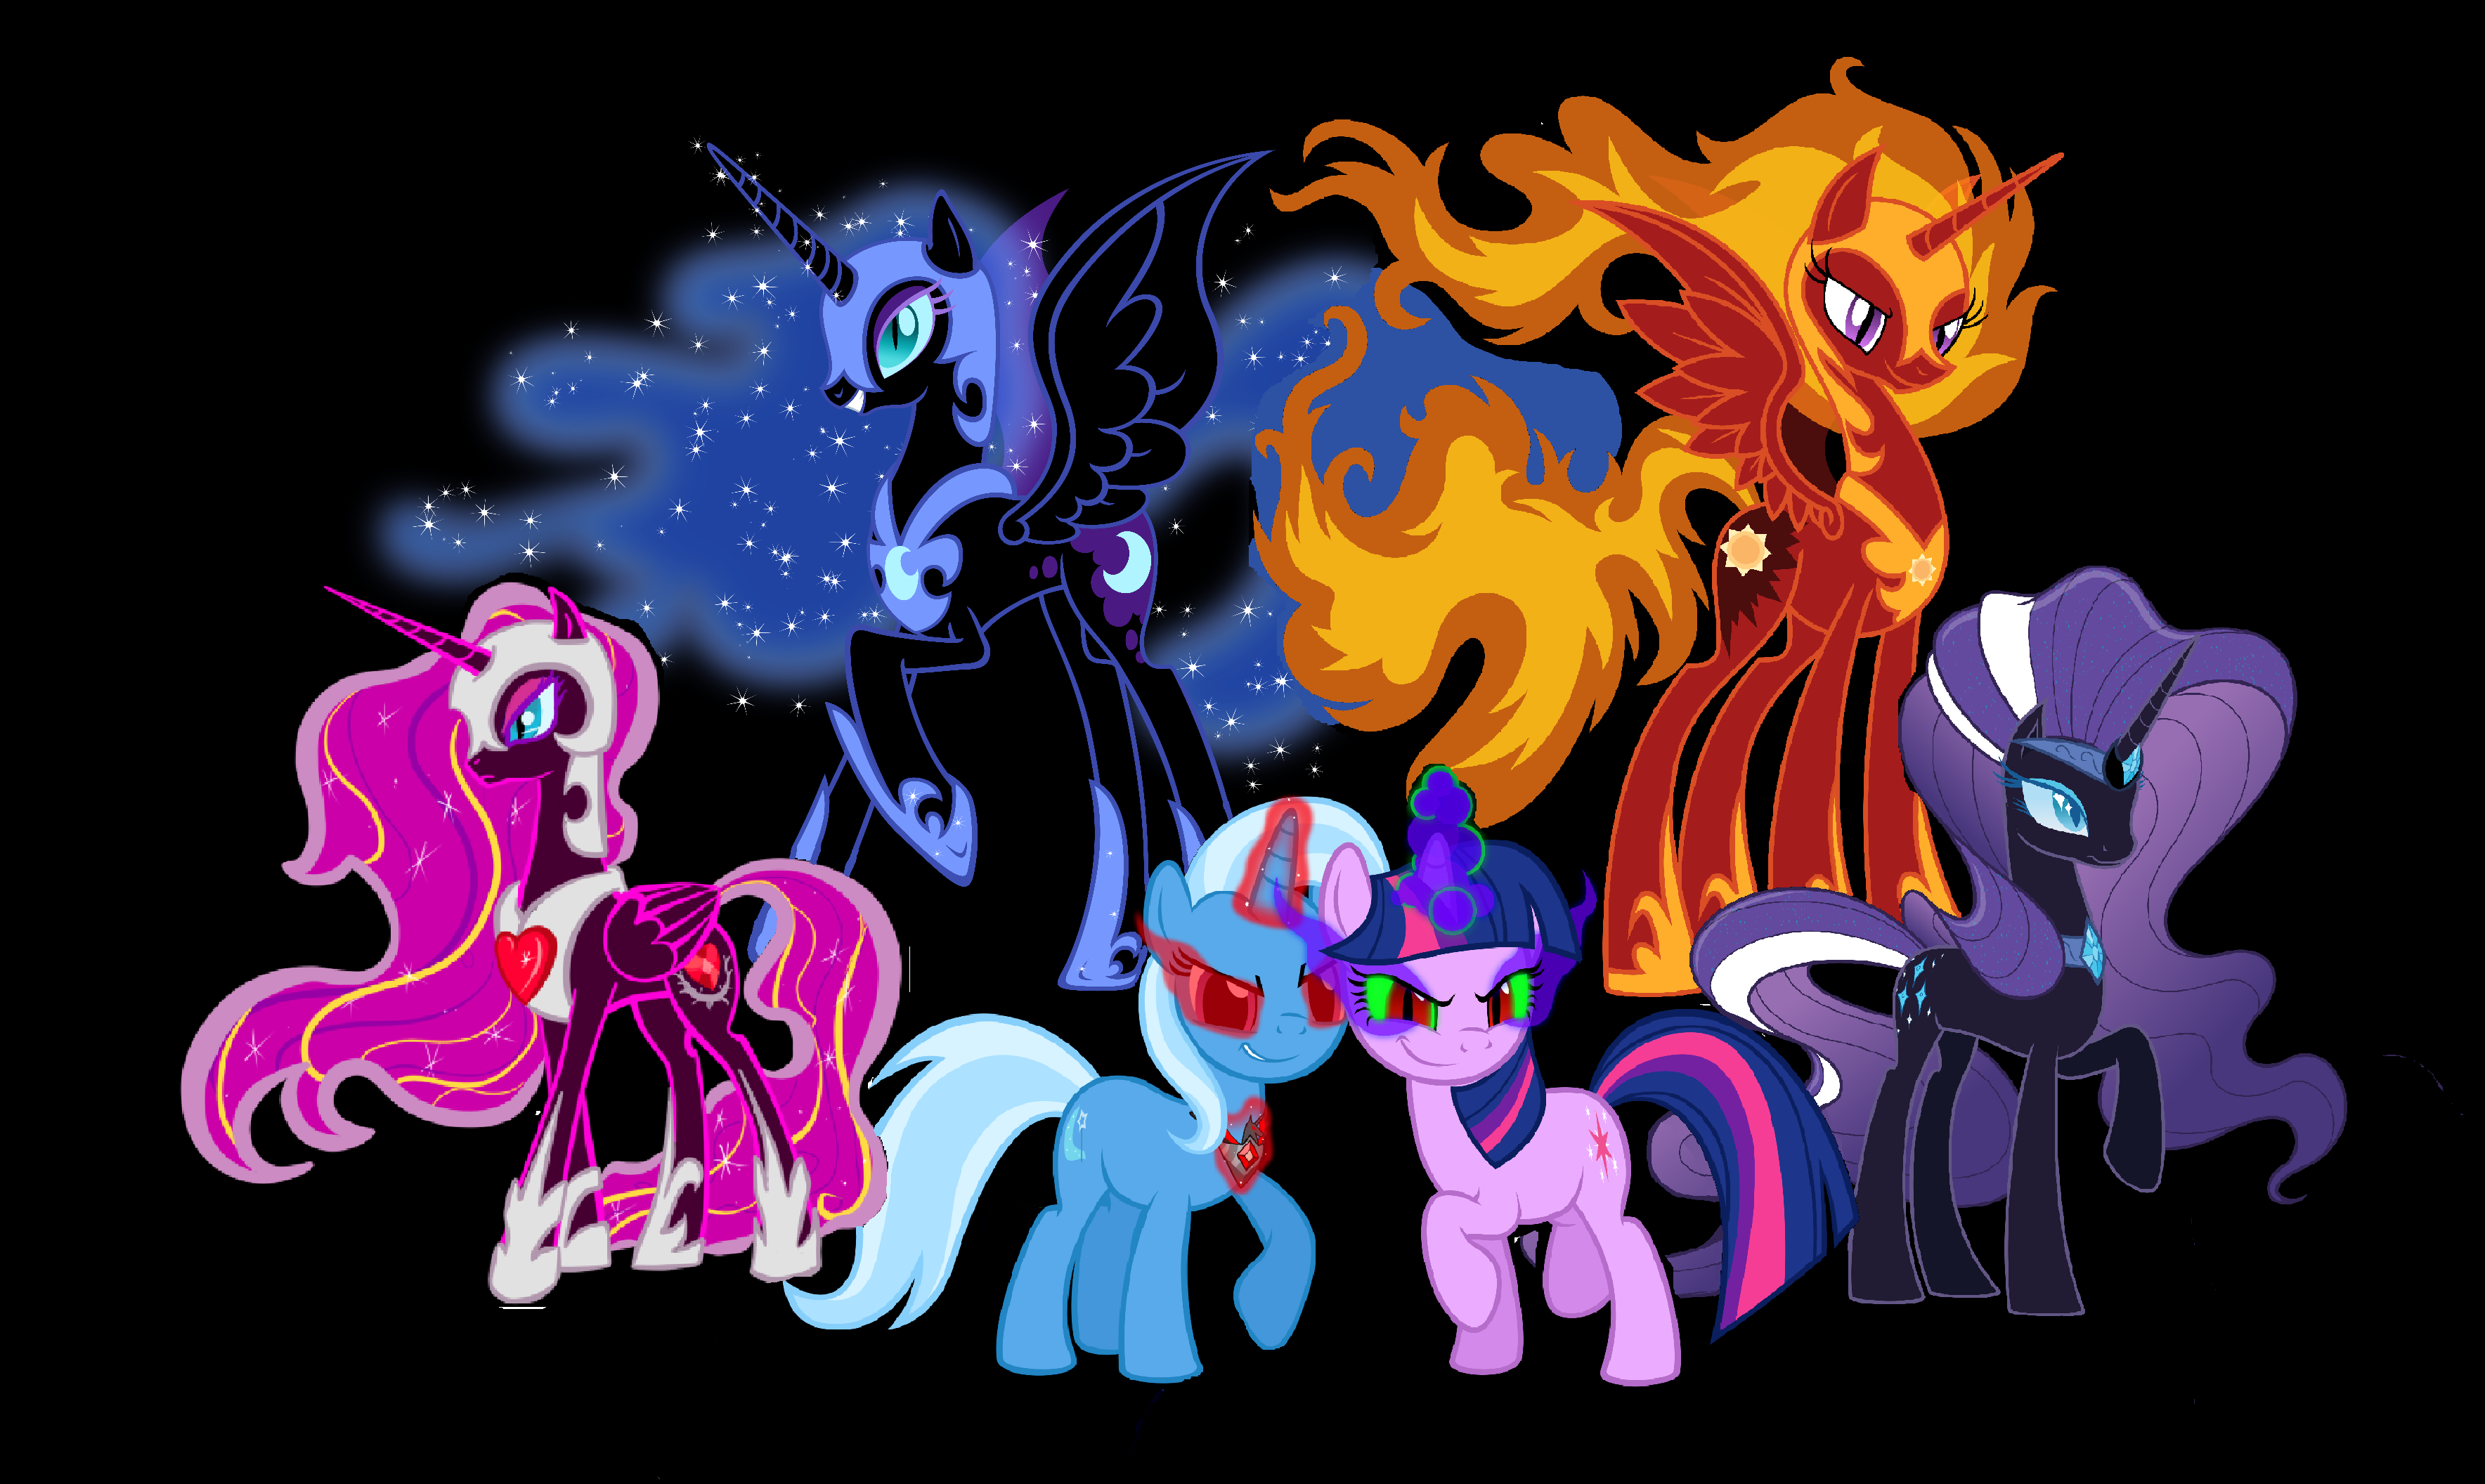 evil mlp coloring pages - photo#28